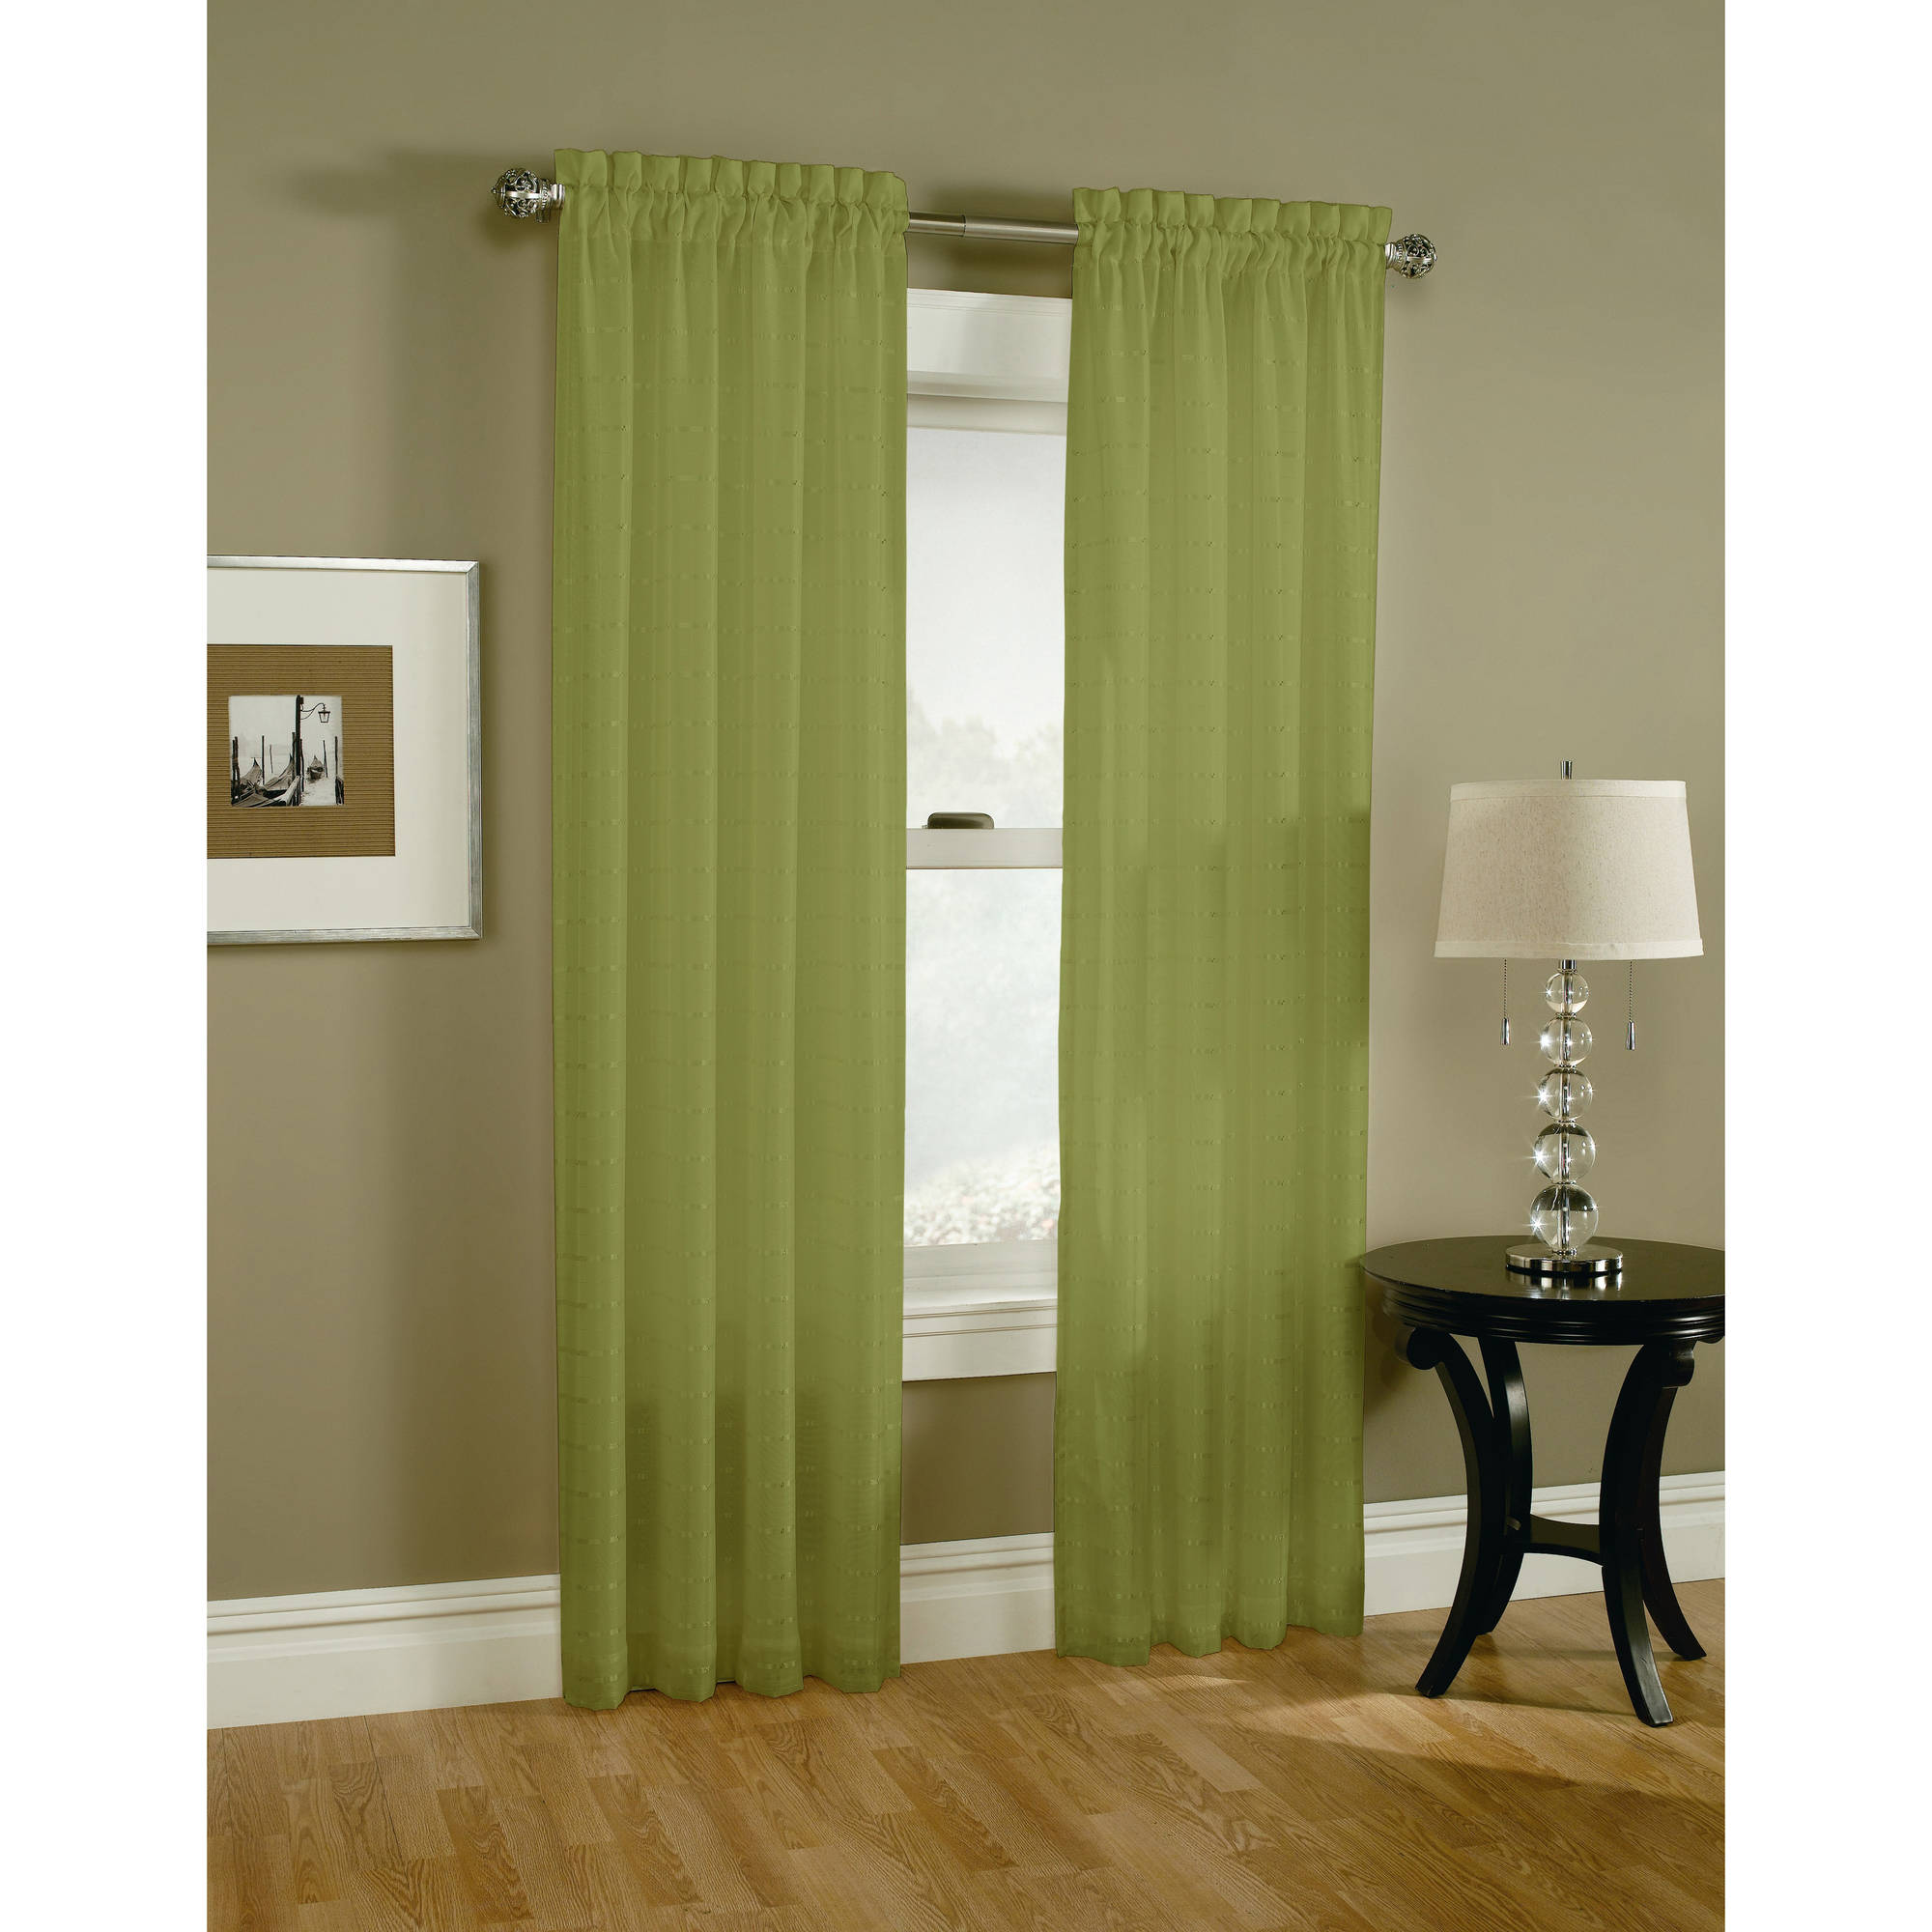 Qutain Linen Solid Viole Sheer Curtain Window Panel D Set Of Two 2 55 X 63 Inch White